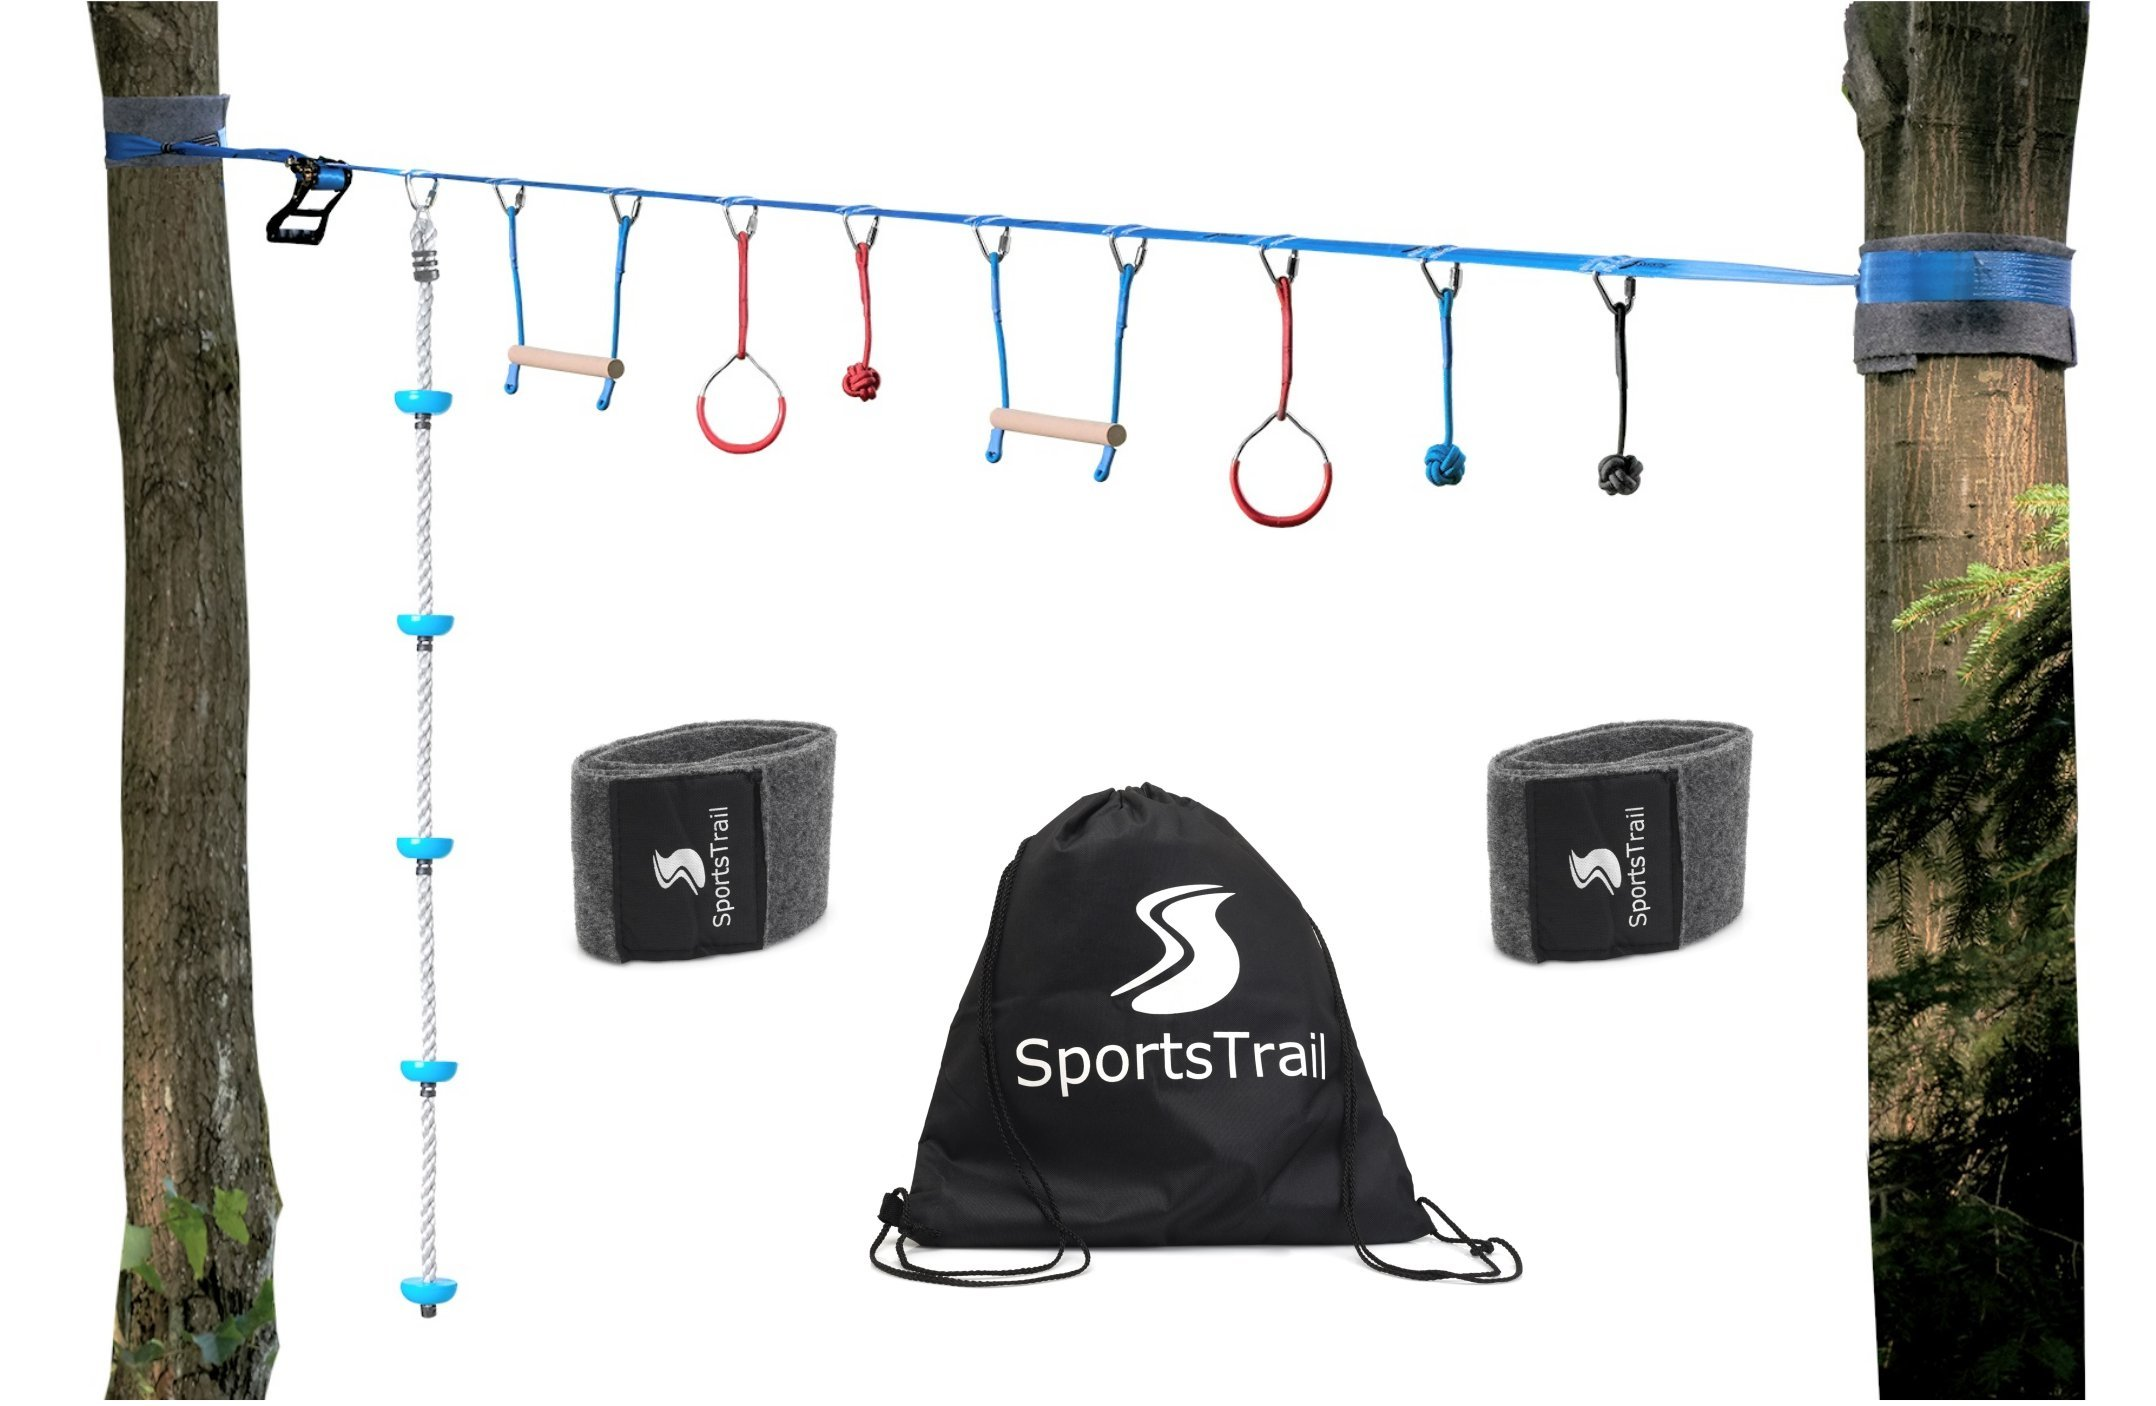 American Ninja Warrior Monkey Bars, 36' Jungle Gym Obstacle Course for Kids and Adults + Climbing Rope, Warrior Training Obstacle Course Equipment, Slackline Gymnastic Bar, Tree protector & Carry Bag